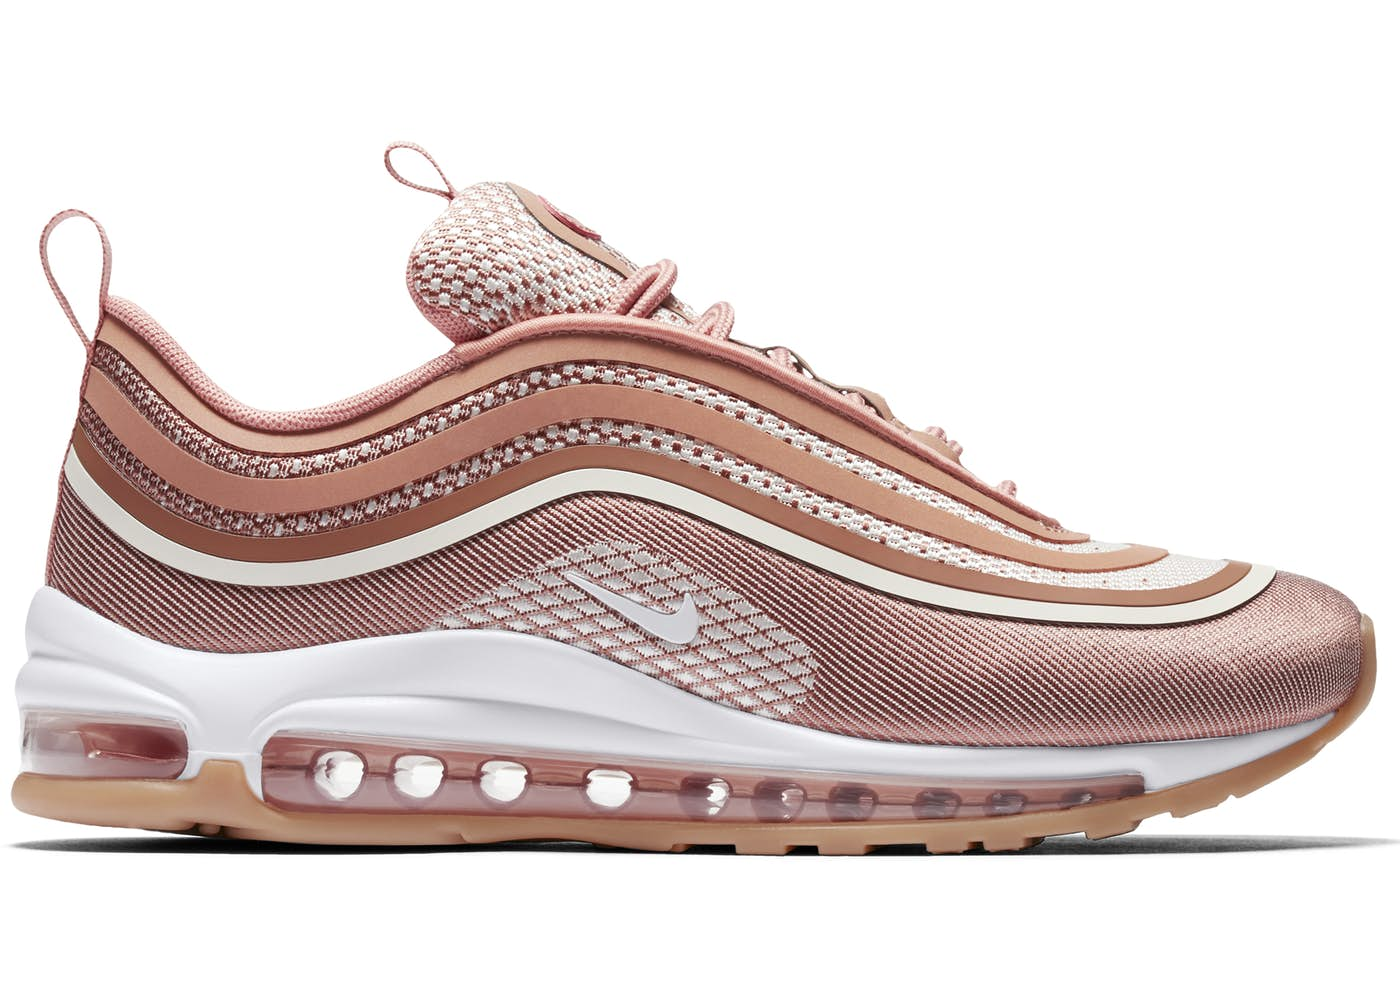 nike air max 97 ultra rose gold 36 40. Black Bedroom Furniture Sets. Home Design Ideas